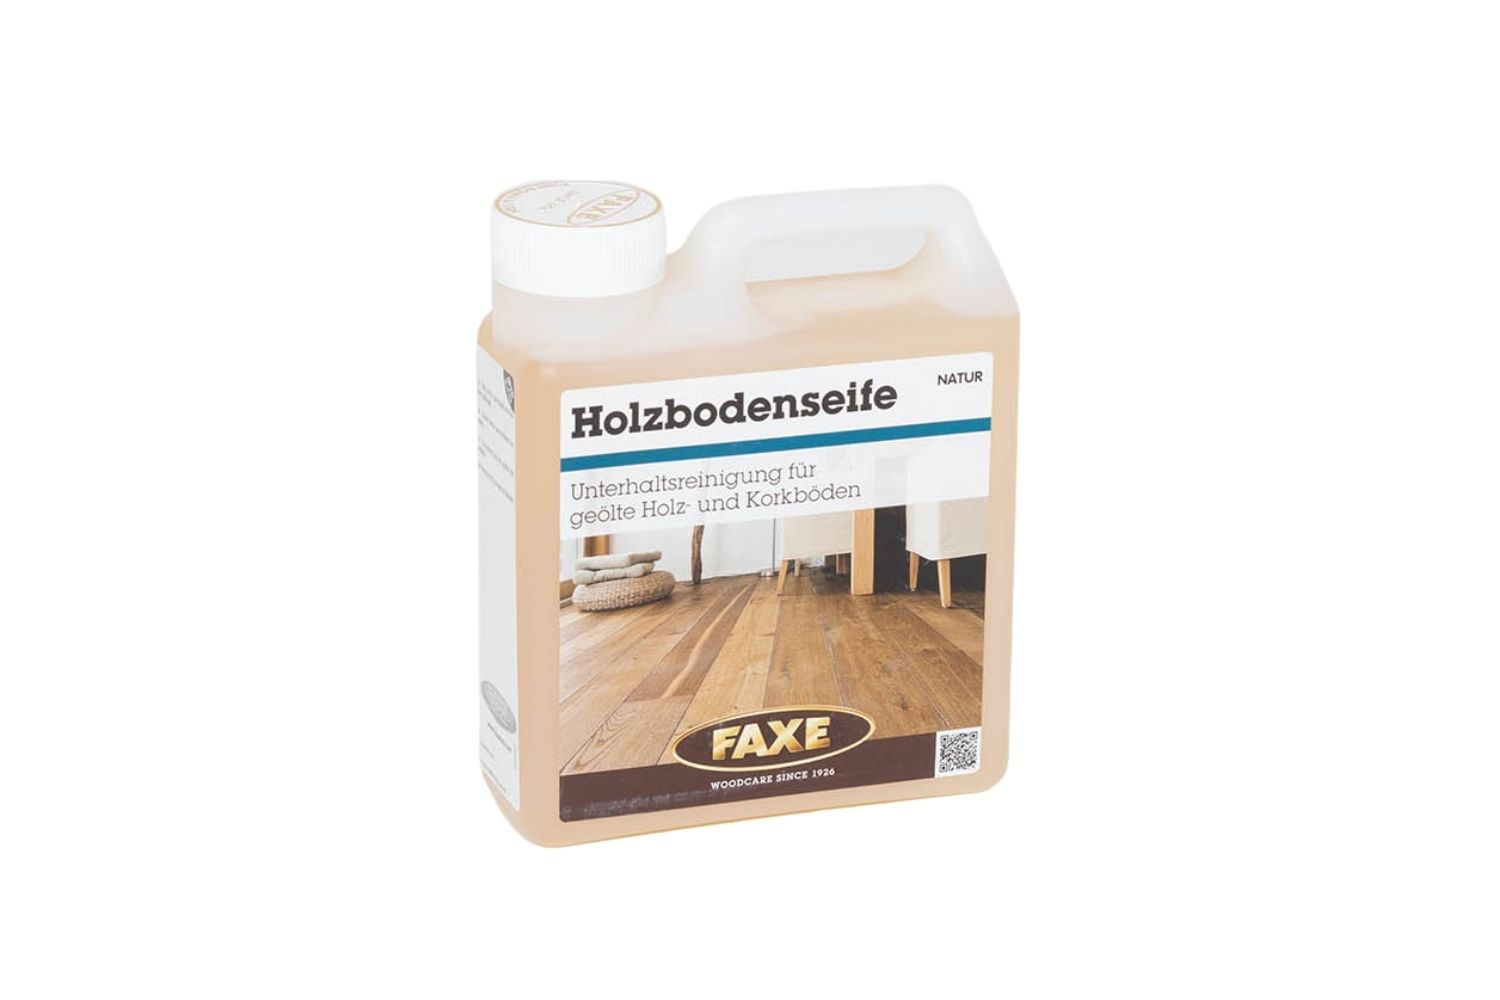 FAXE Holzbodenseife natur